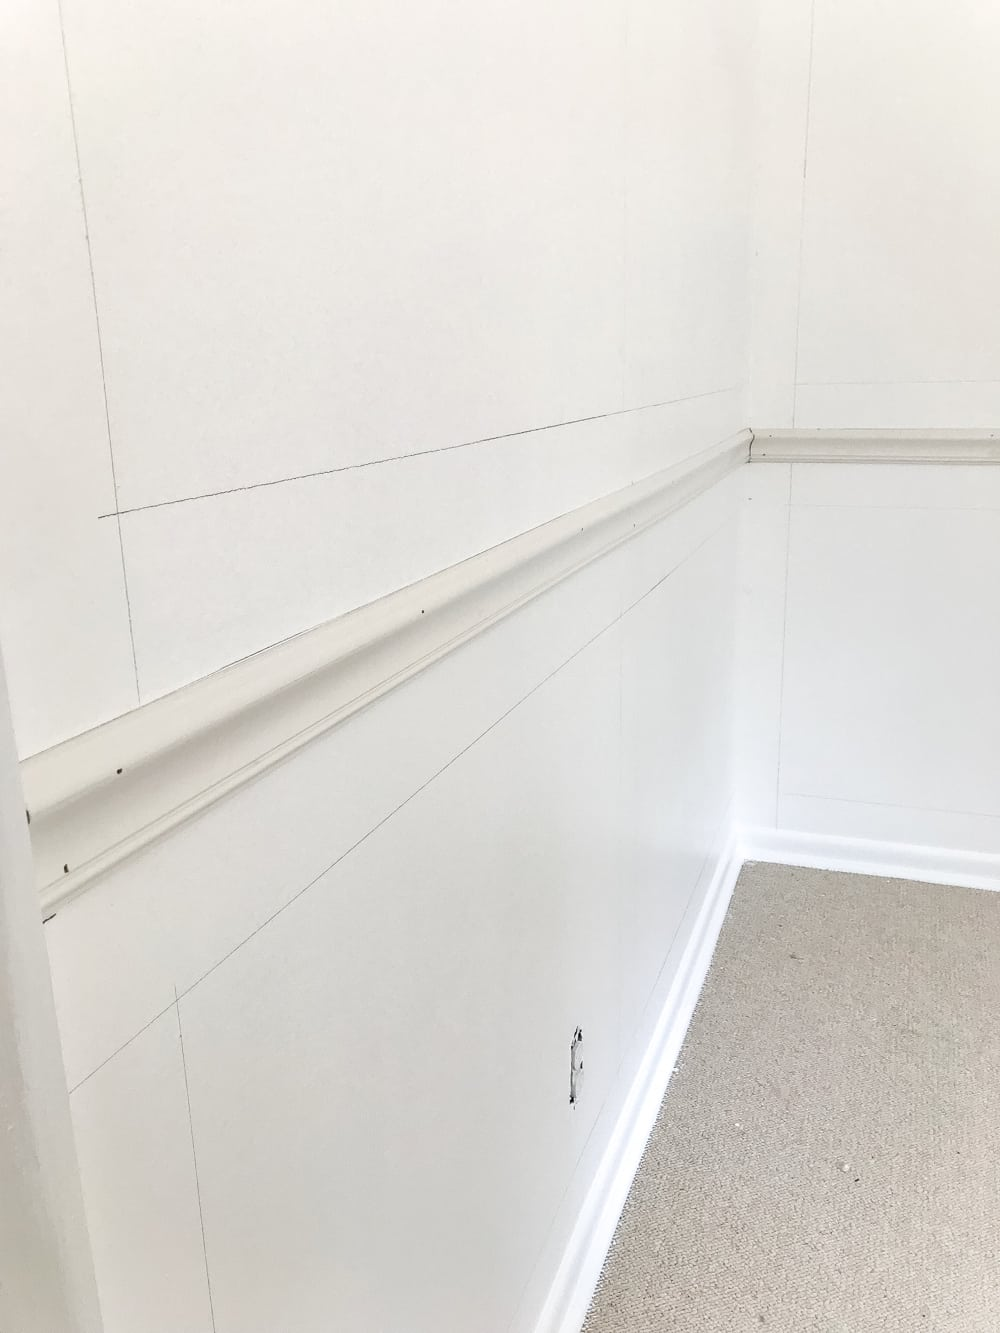 "mark walls for picture frame molding using a 4"" board as a spacer"